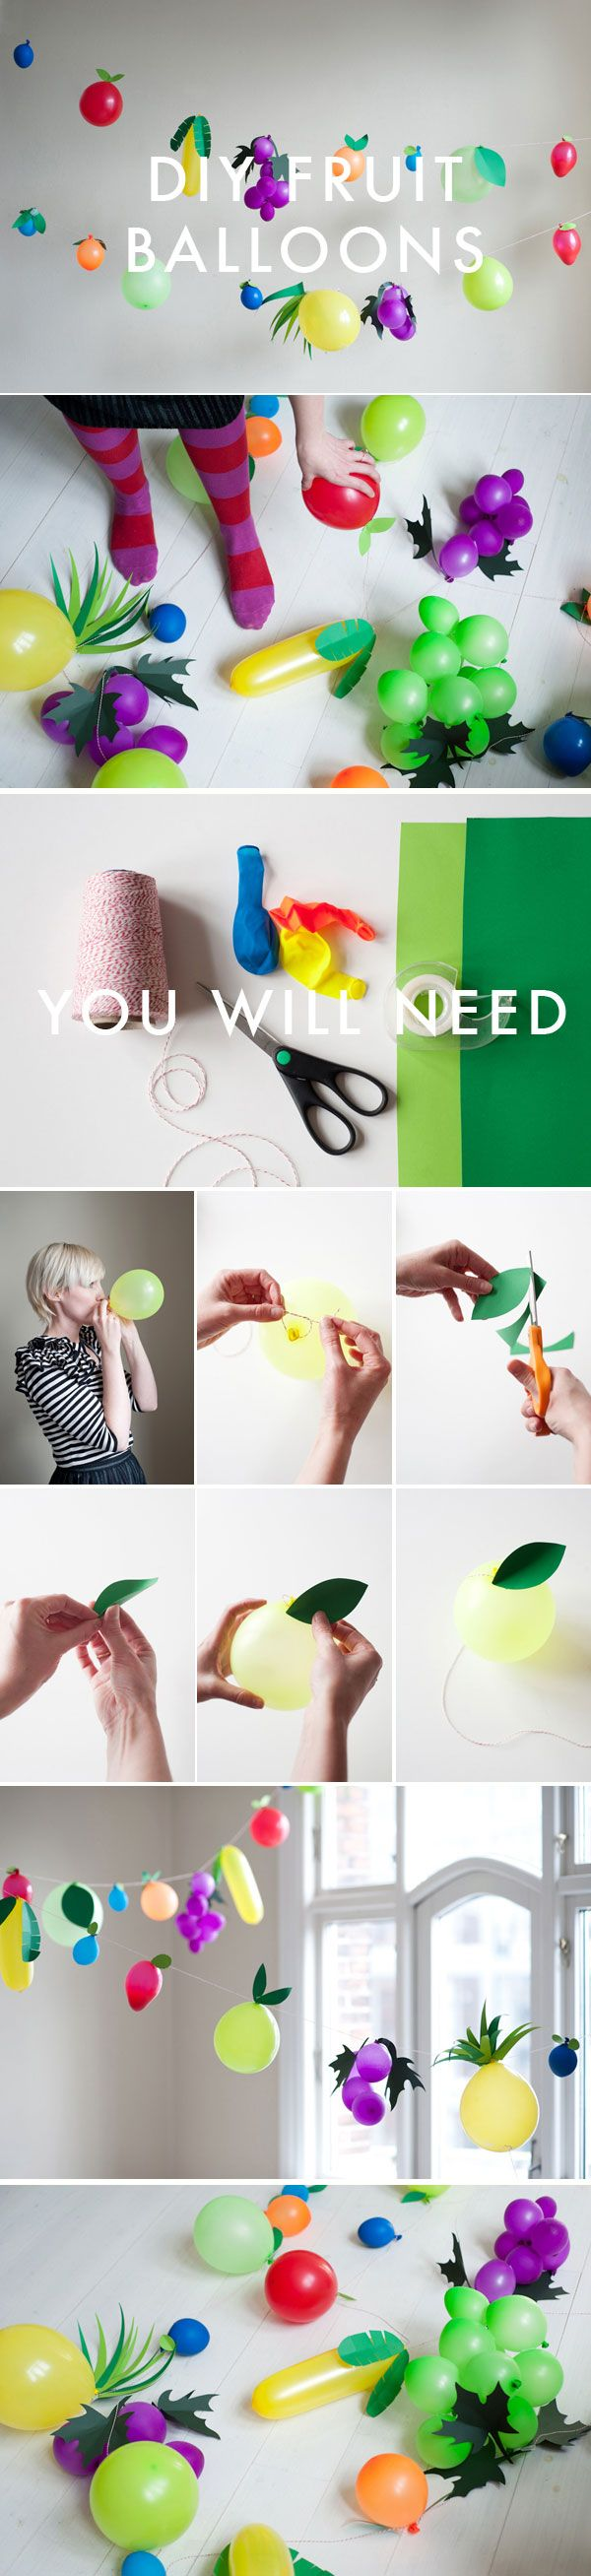 DIY fruit balloons, perfect for a party